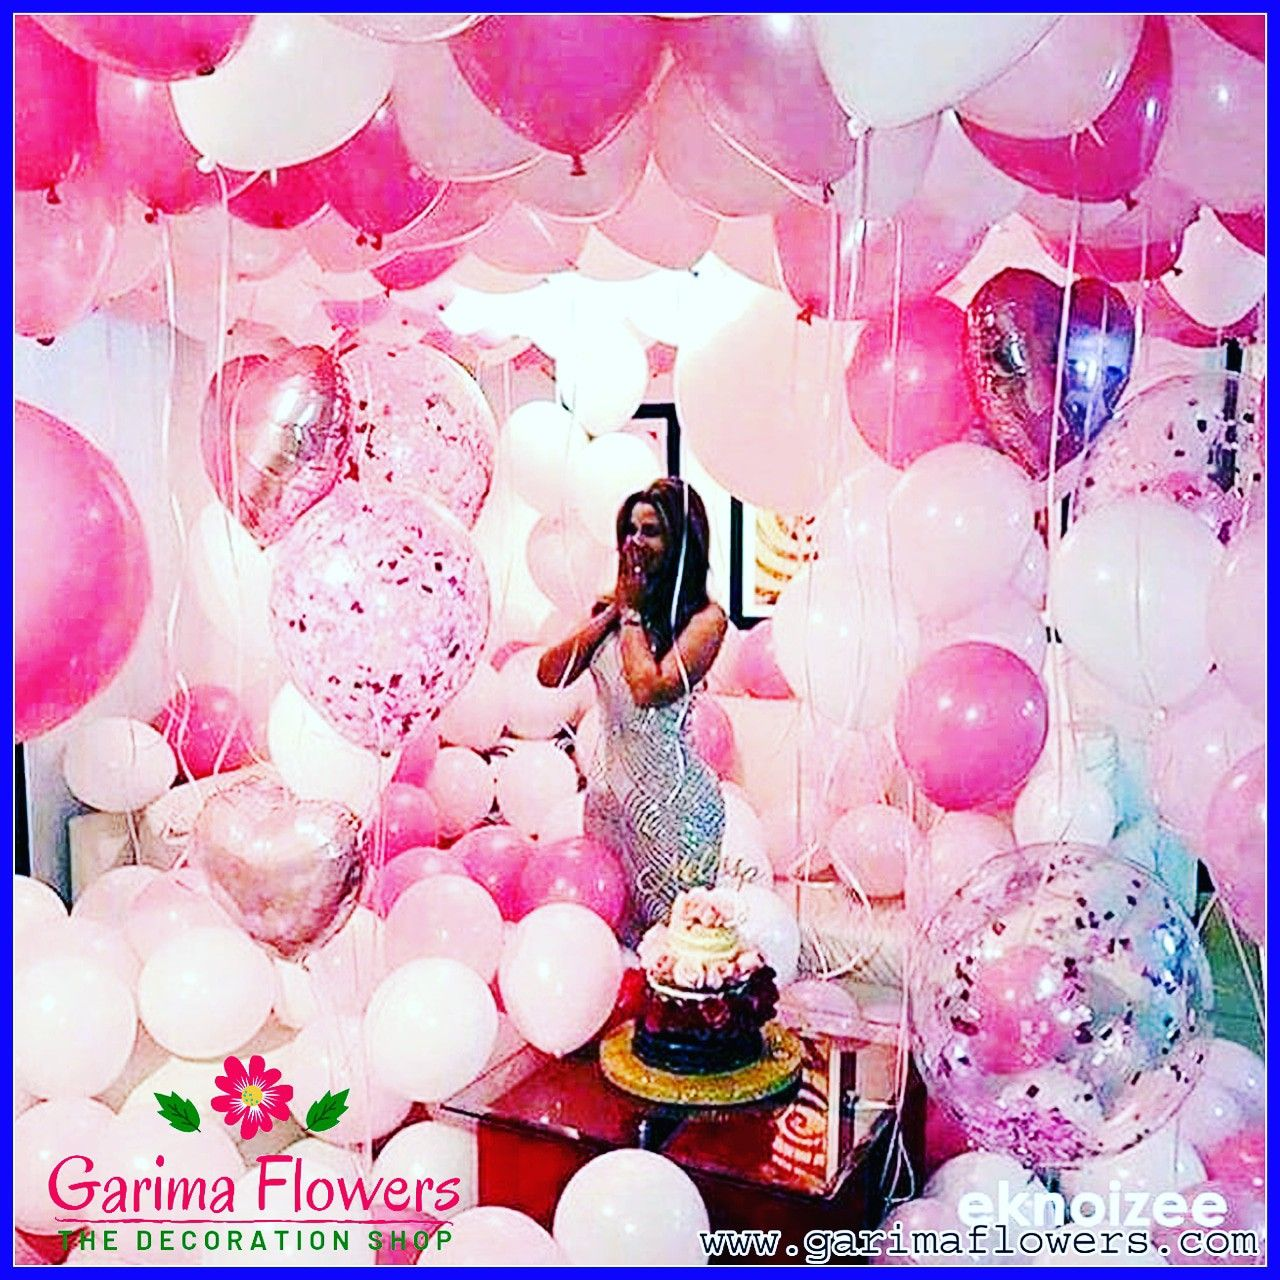 Balloon Decoration for Birthday parties For more inquiry contact:- 8503970087 Or more information visit our website:- www.garimaflowers.com  #flowers #flowersdecoration #floralentrance #decor #decorations #flowersdesigner #eventplanner #eventdecor #artificialdecoration #alldecoration #mandapdecoration #marriagedecoration #marriagegardendecor #cardecoration #roomdecoration #rangoli #balloons #balloondecoration #bouquet